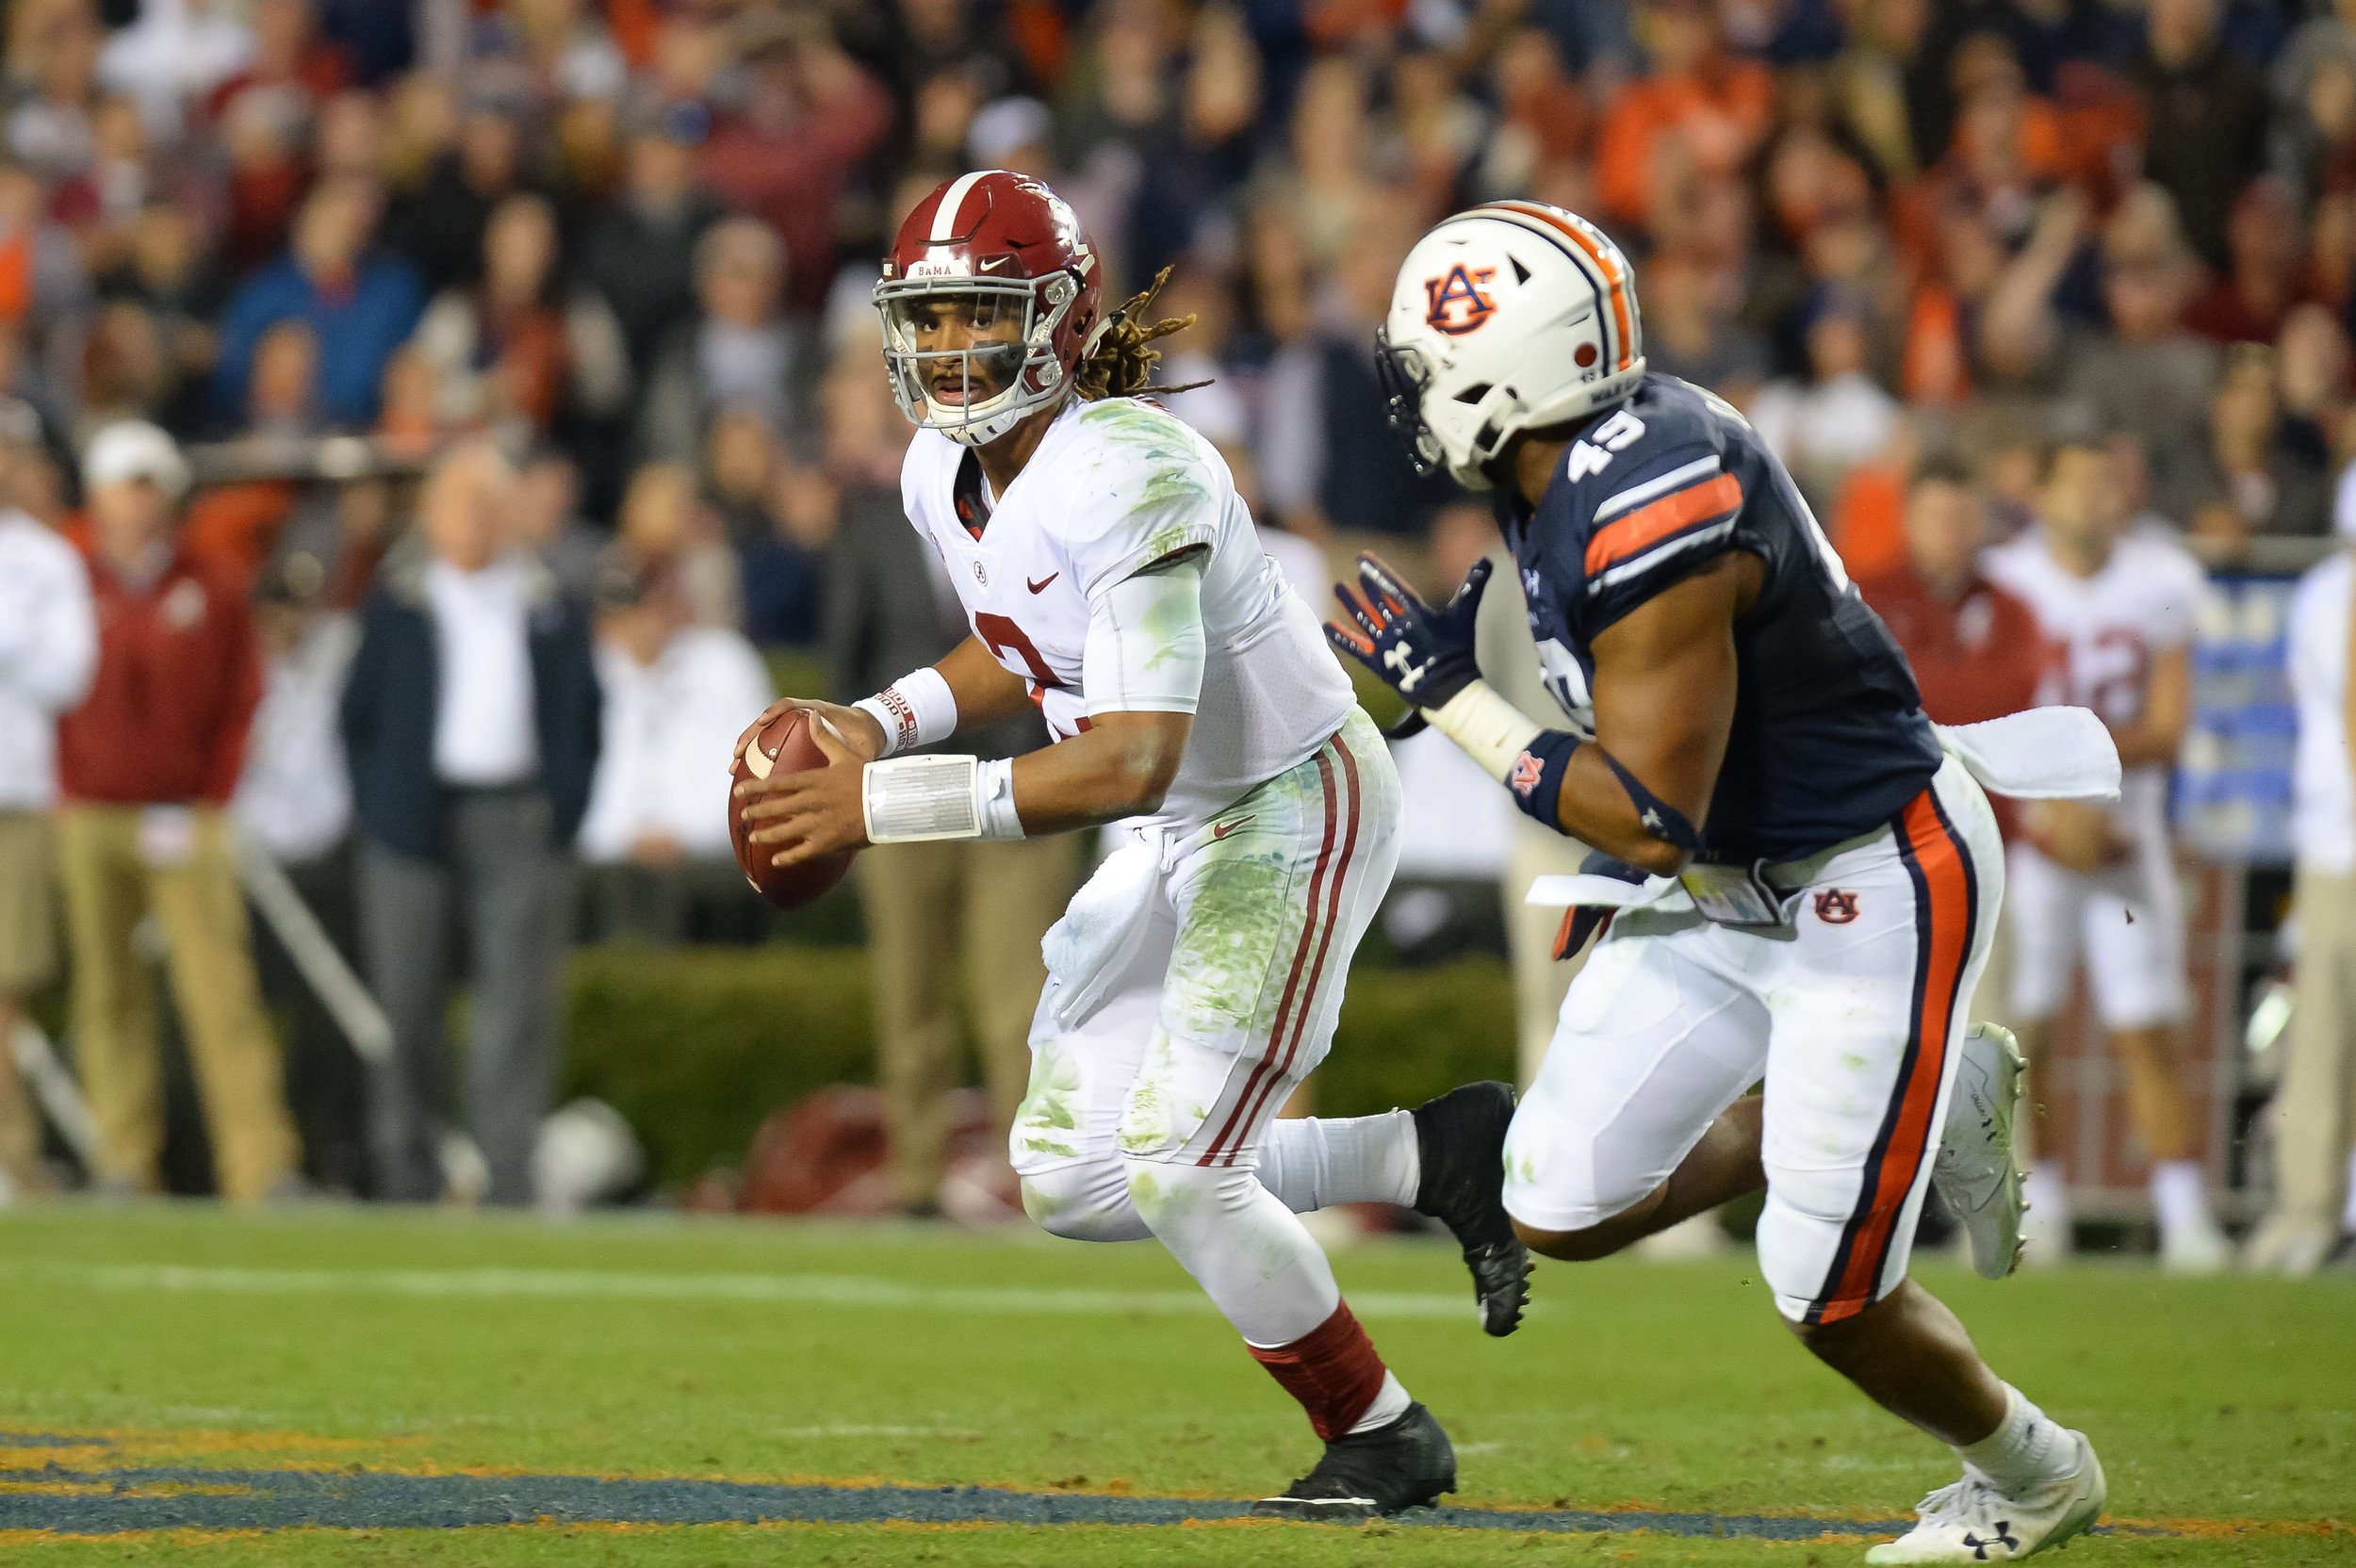 Alabama Crimson Tide quarterback Jalen Hurts (2) is pressured by Auburn Tigers linebacker Darrell Williams (49) during the second half of Saturday's game, at Jordan-Hare Stadium.